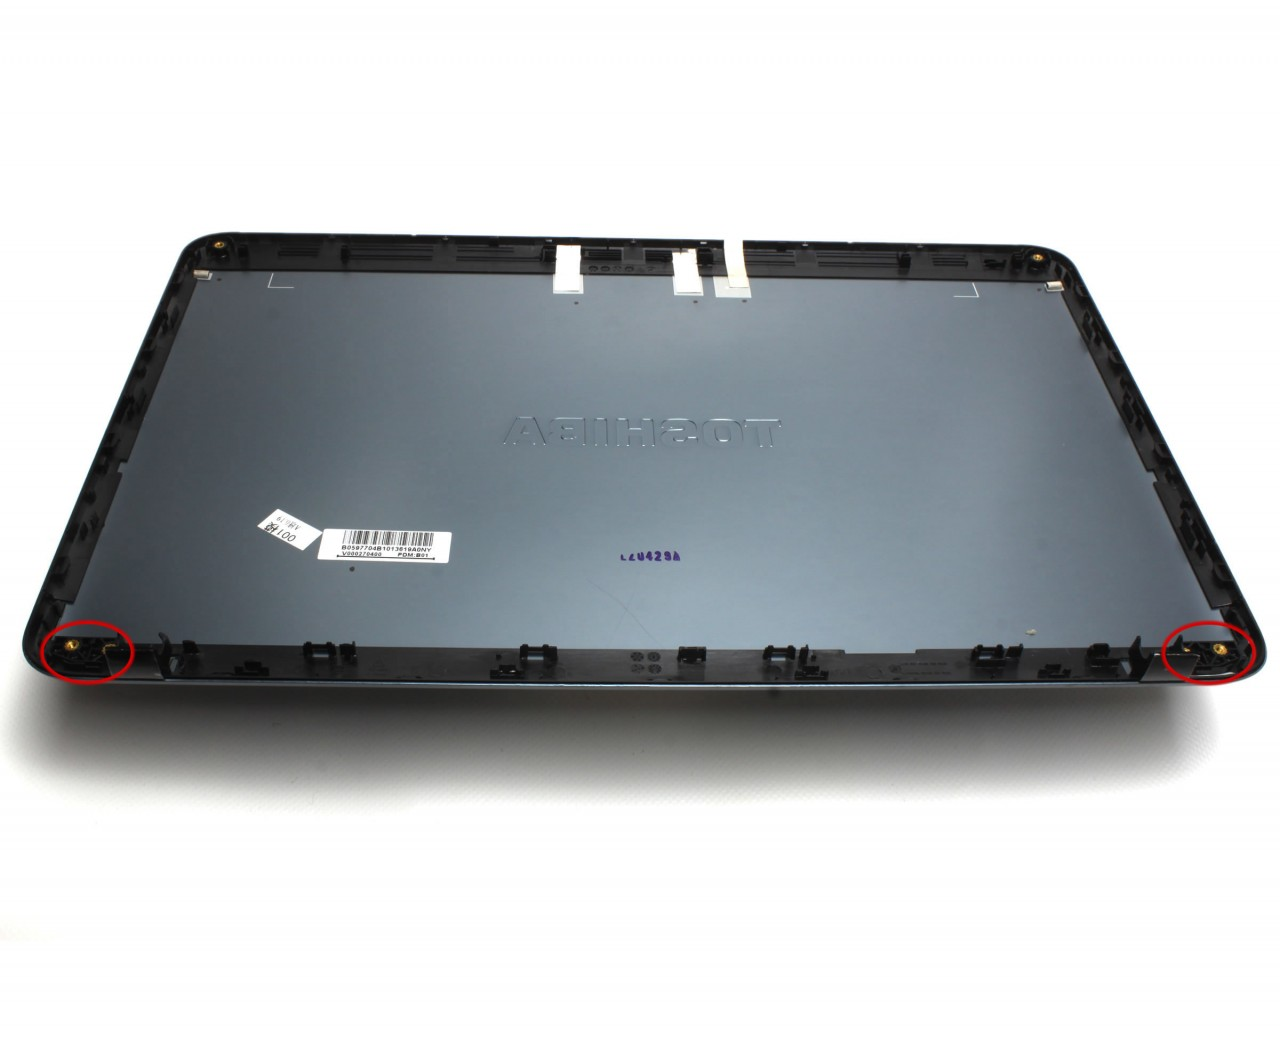 Capac Display BackCover Toshiba V000270400 Carcasa Display Gri cu 2 Suruburi Balamale imagine powerlaptop.ro 2021